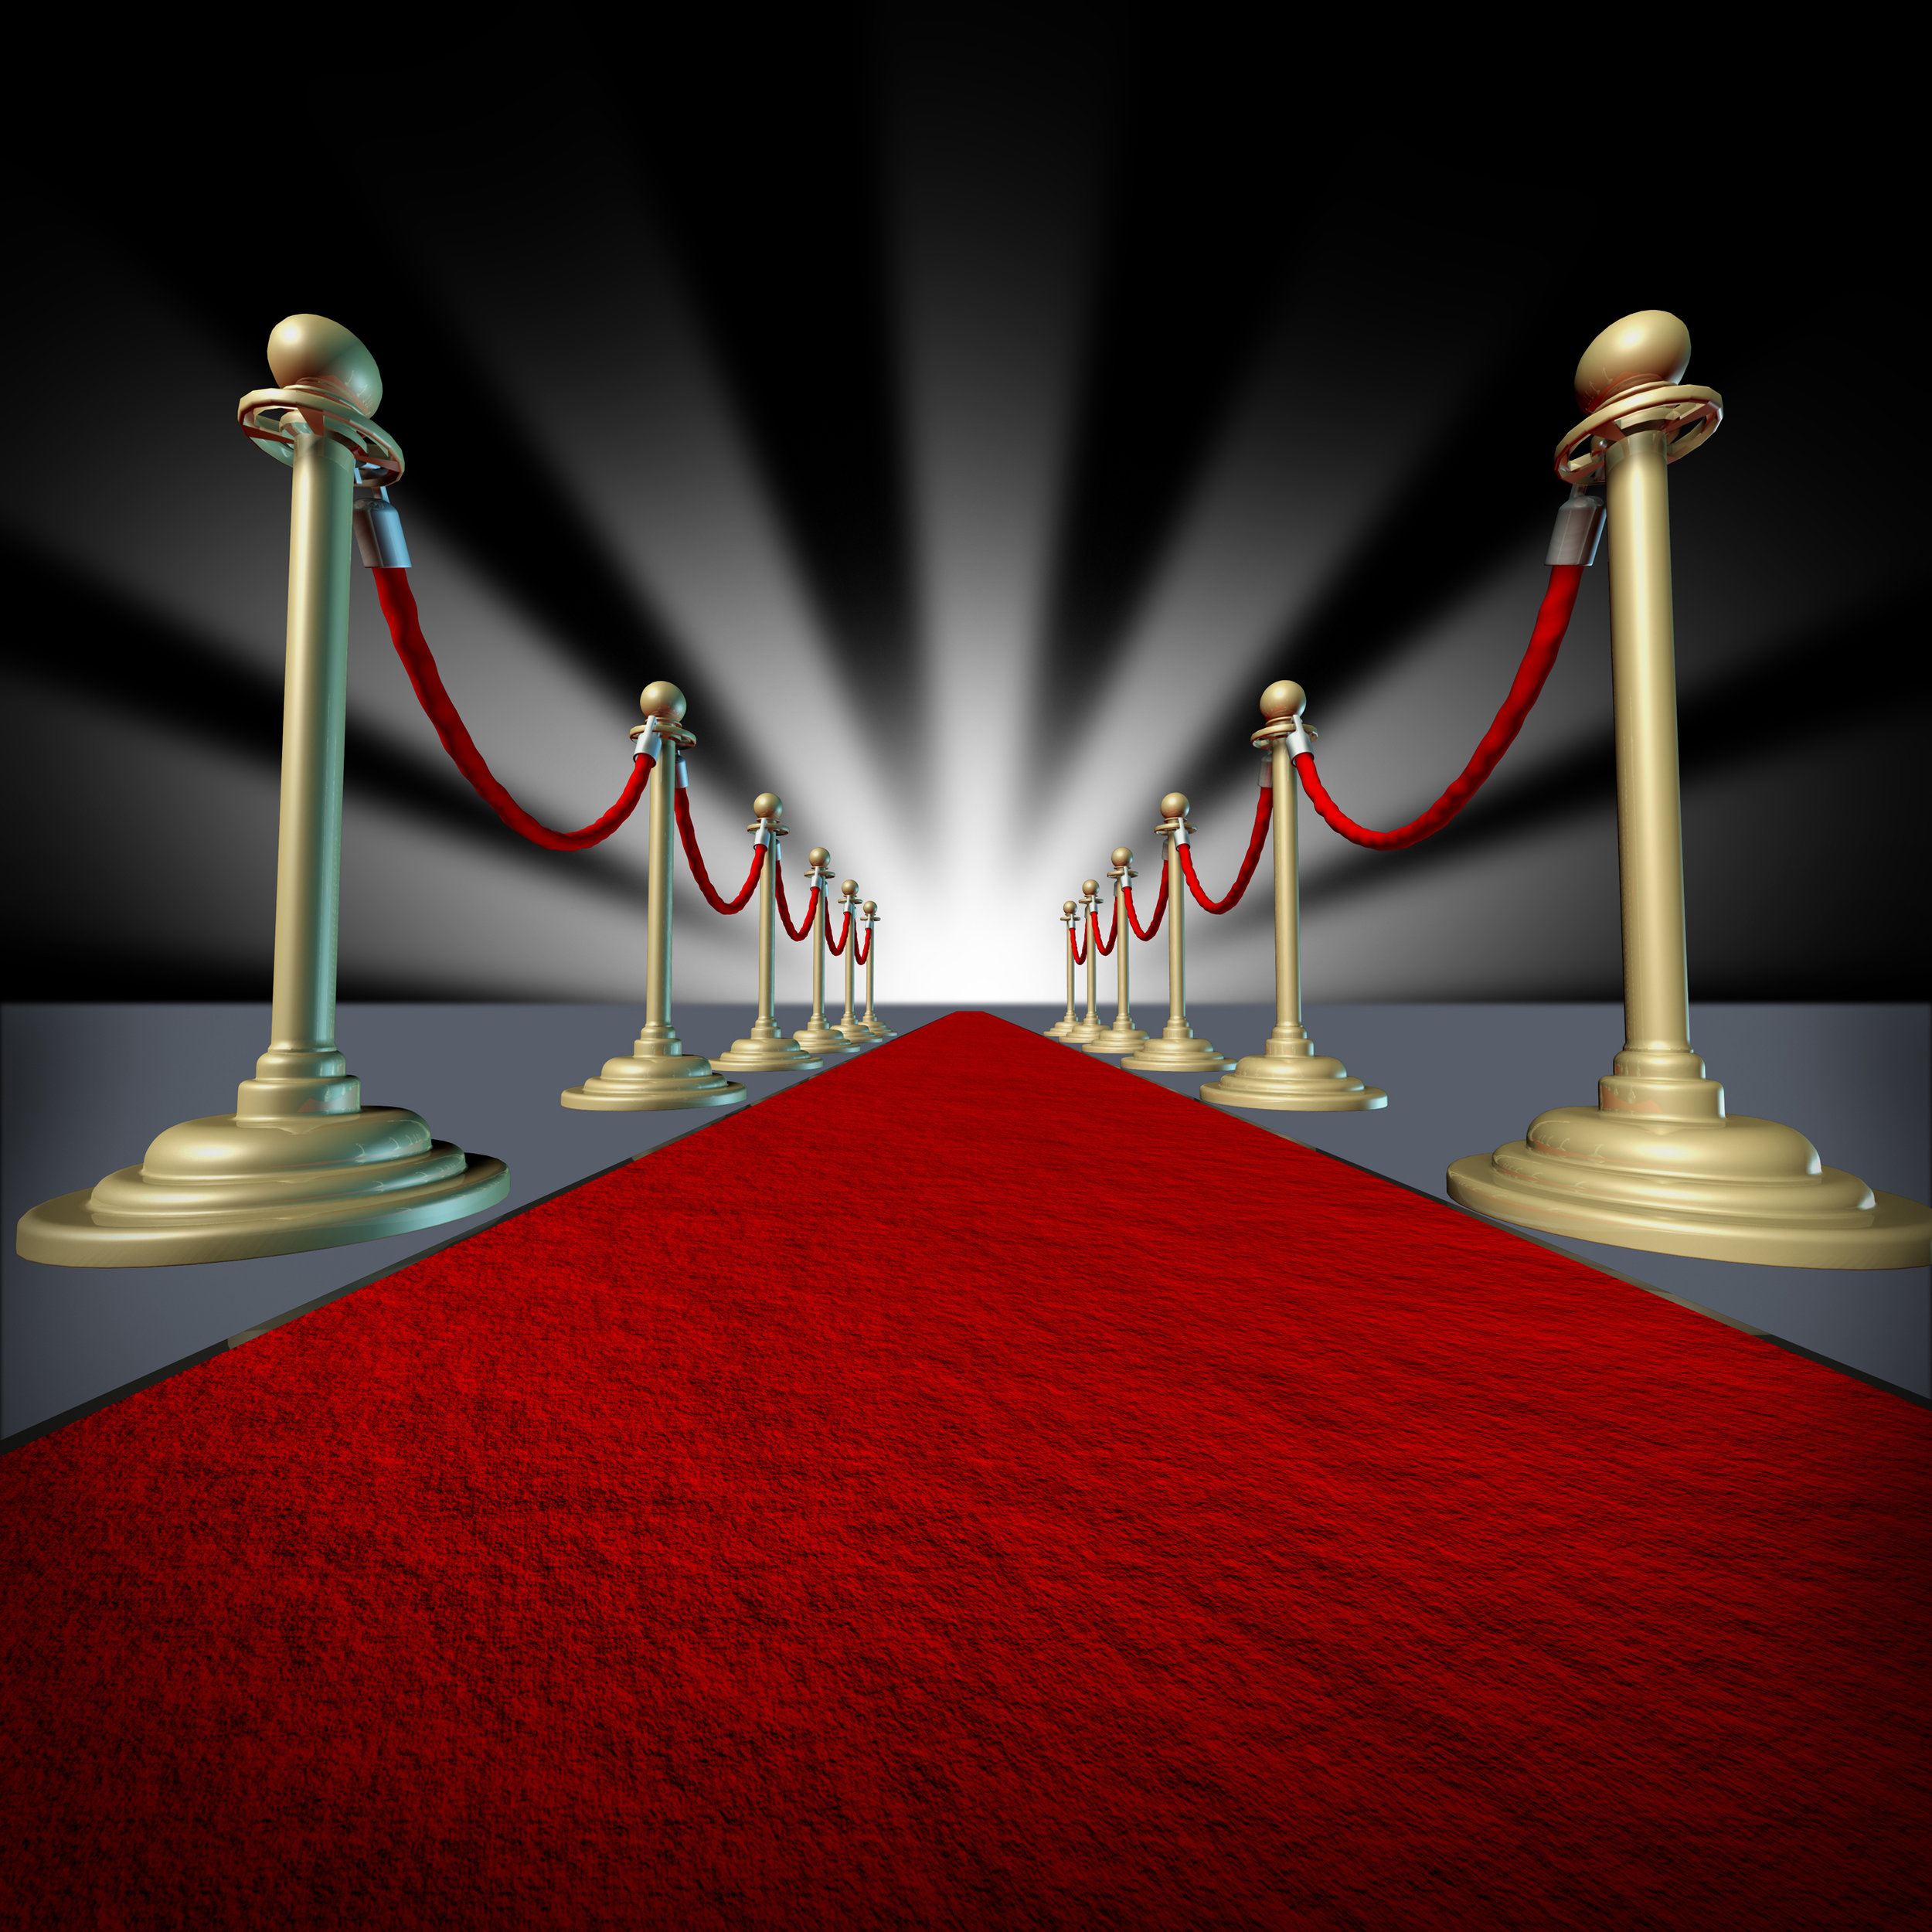 The Red Carpet.jpg